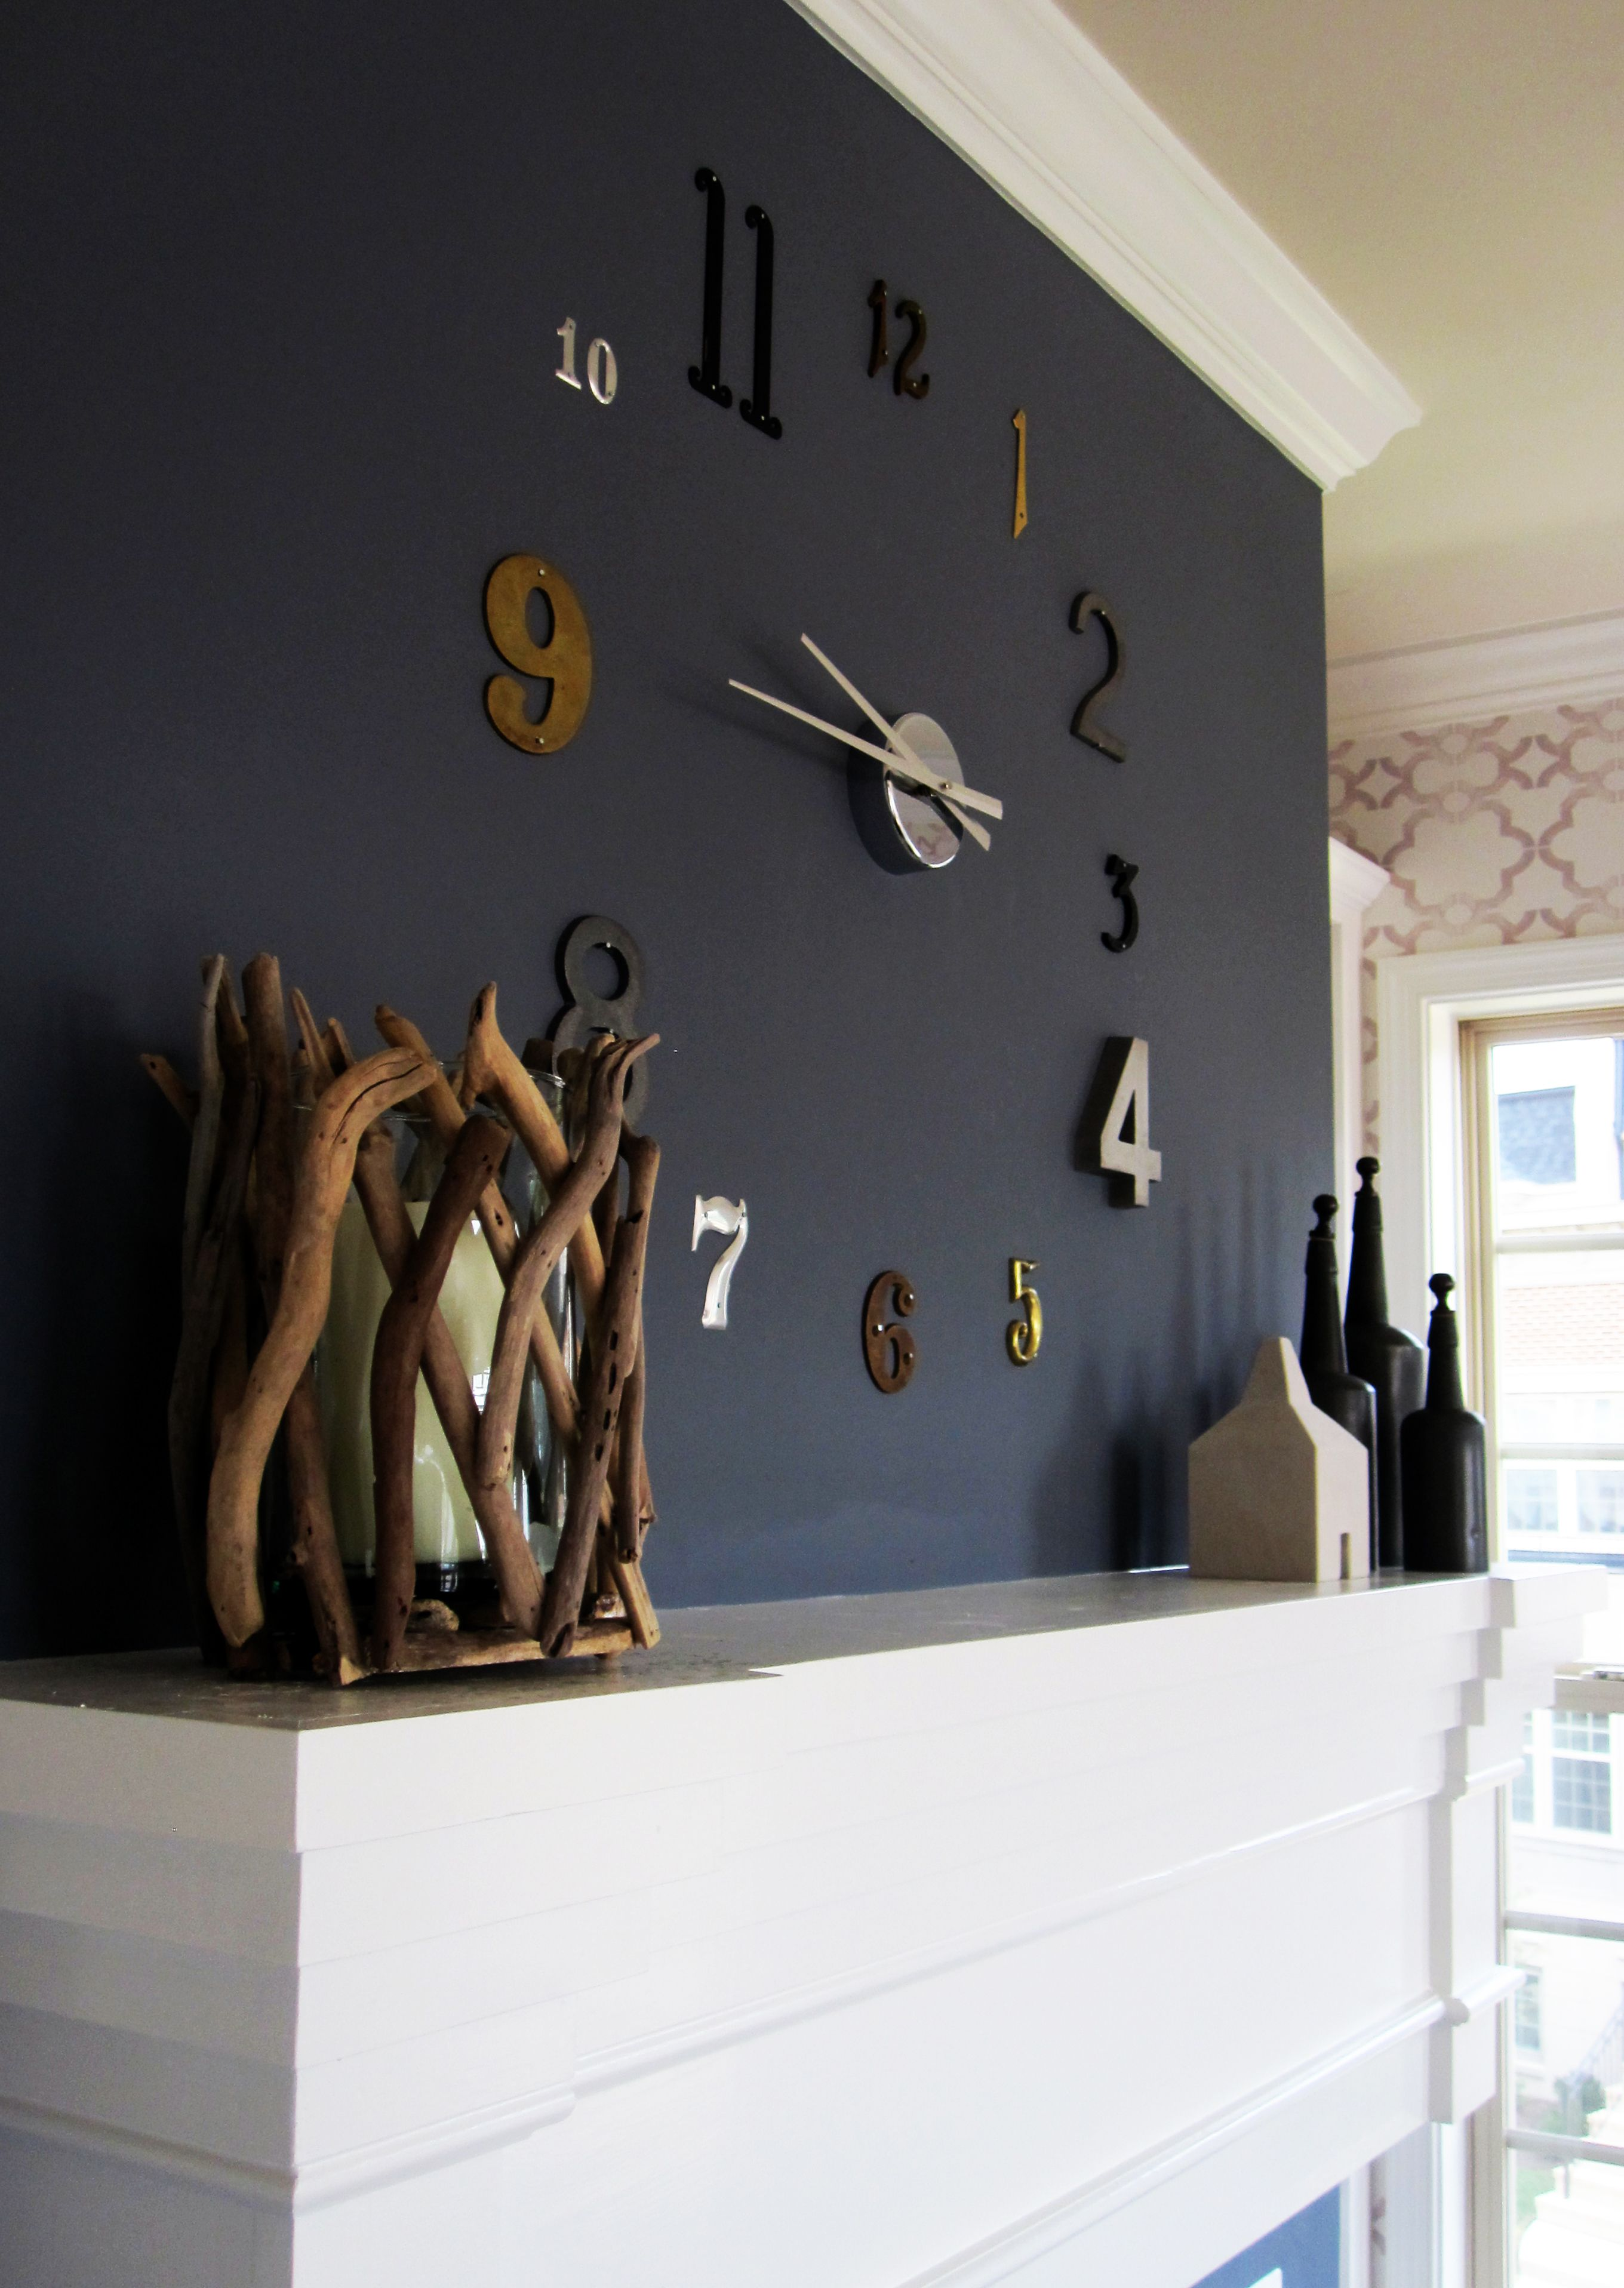 Evolution Of The Kitchen Clock | Wall clocks, Clocks and Diy wall clocks